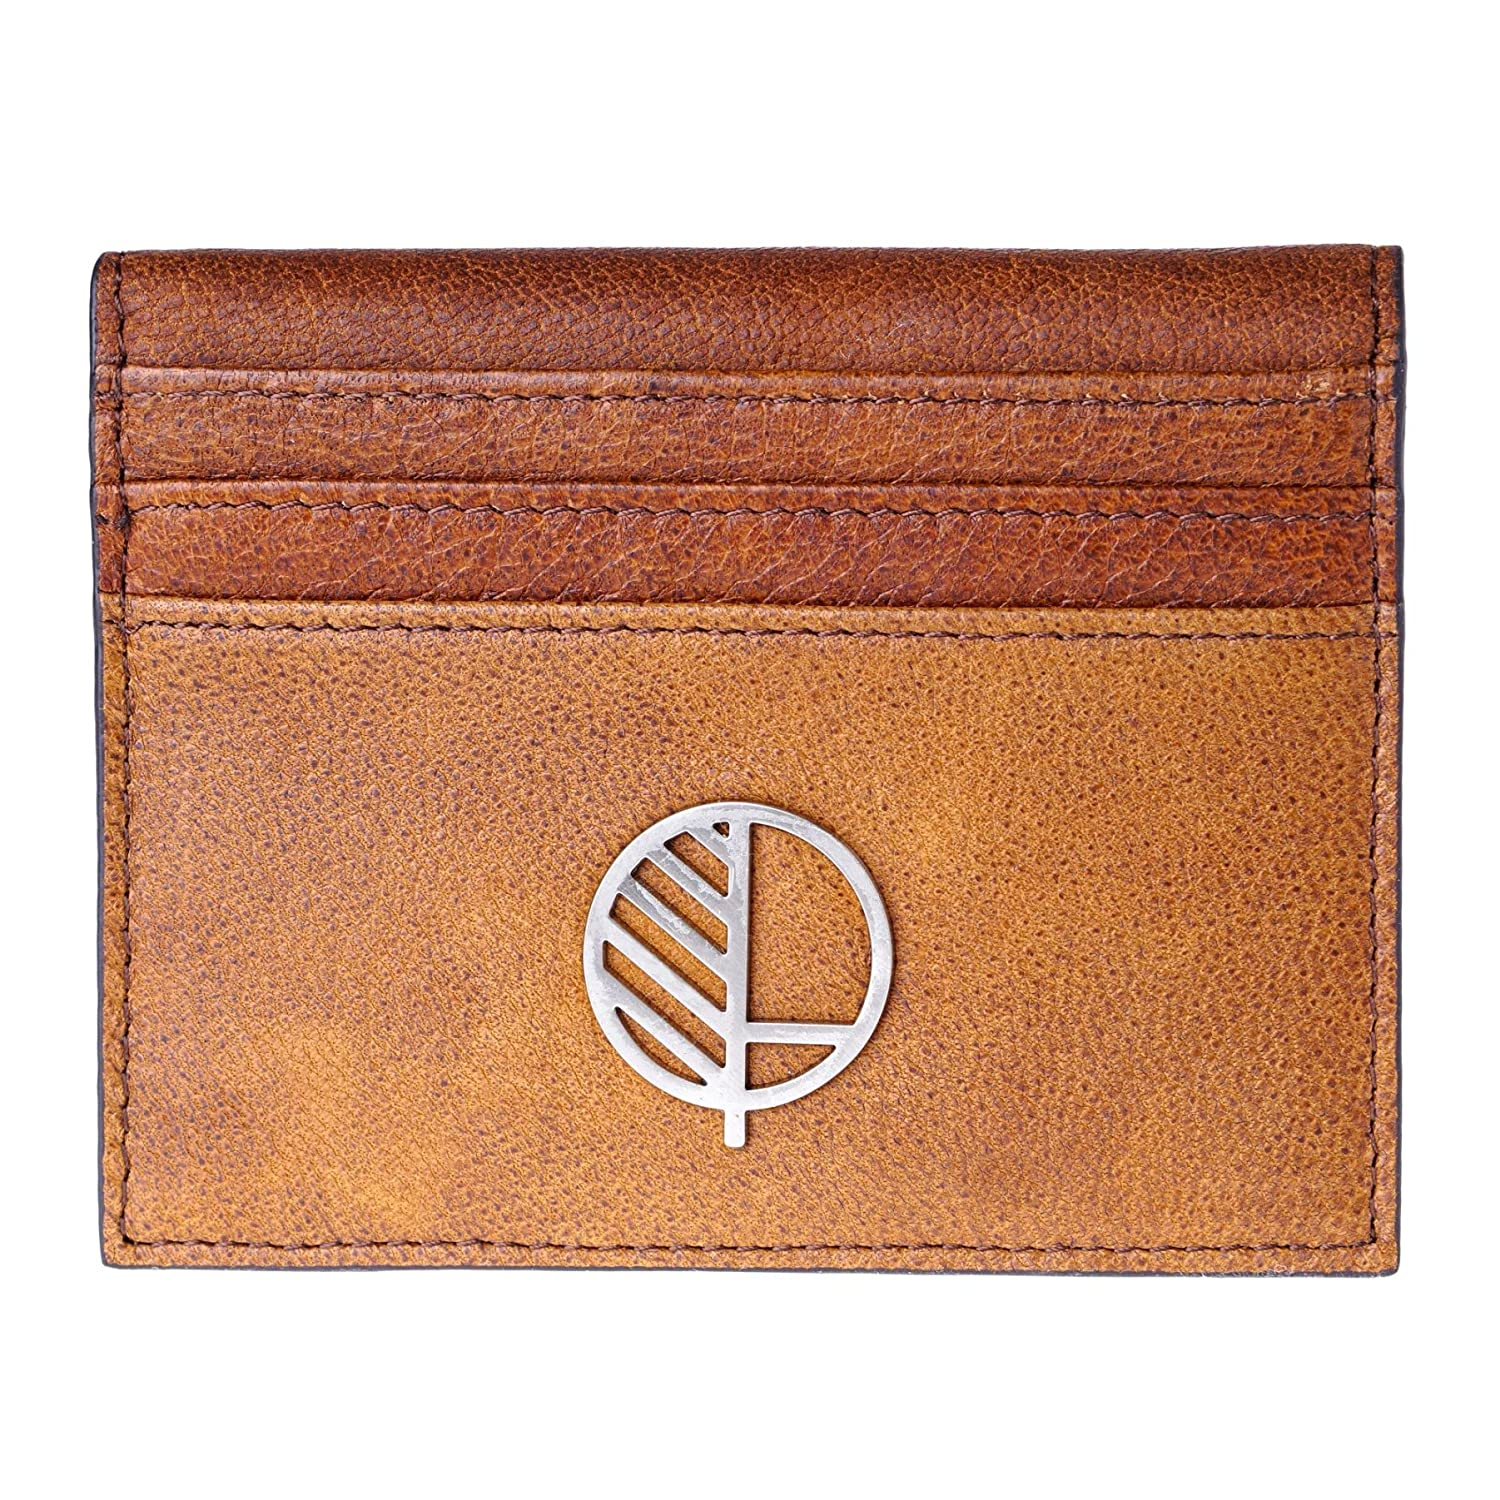 Sensuous Mens Premium Real Leather Compact Wallet and Large Credit Card Holder with ID Window in Stunning Genuine British Leather TheActive from Drew Lennox in Buttery Soft Verglas Black.